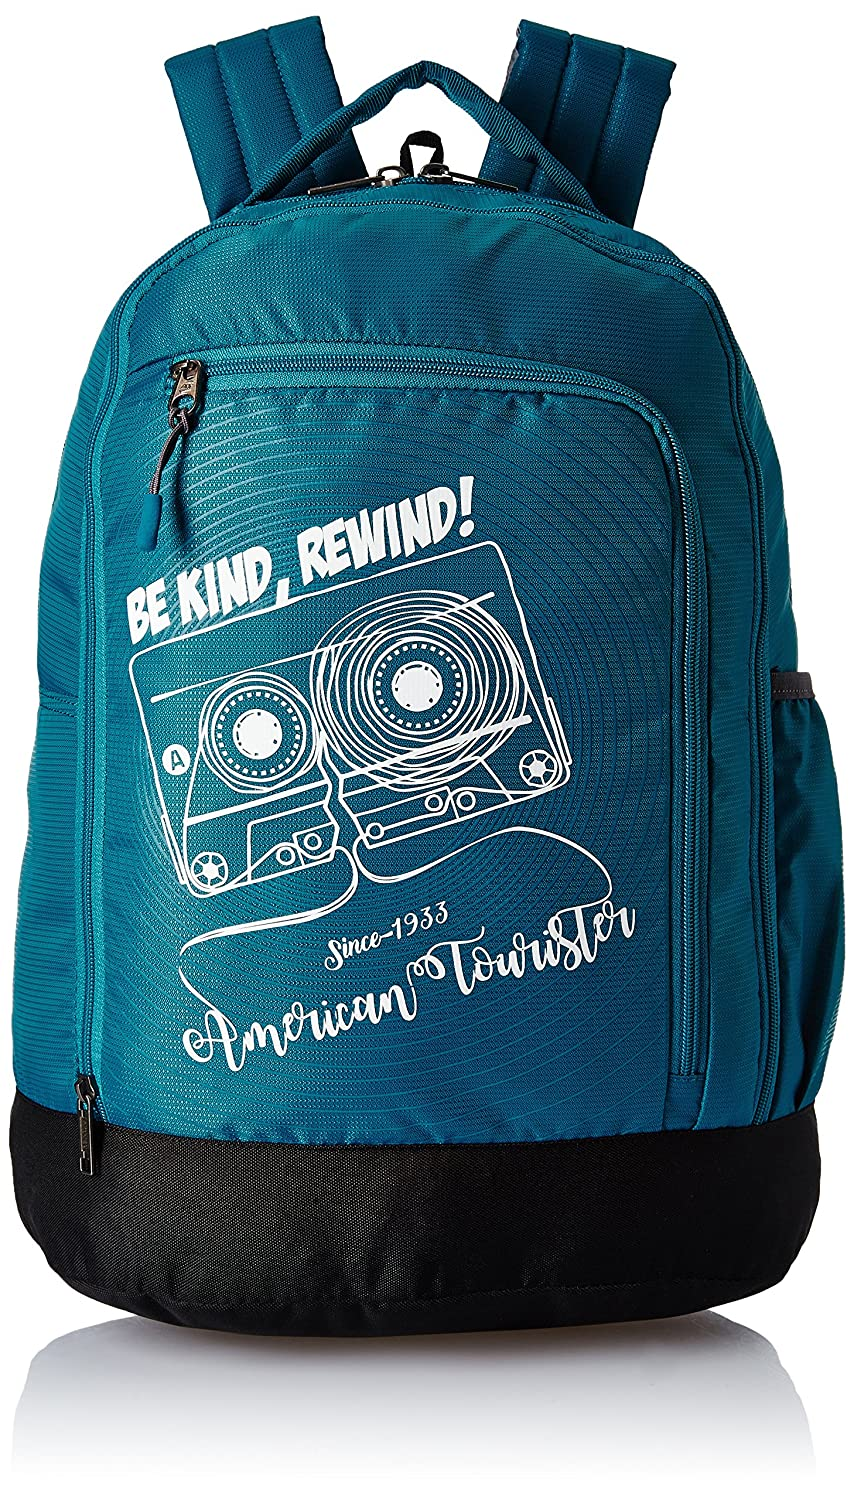 c14e20086a1 American Tourister 28 Ltrs Teal Casual Backpack (AMT PING Backpack 02 -  Teal)  Amazon.in  Bags, Wallets   Luggage